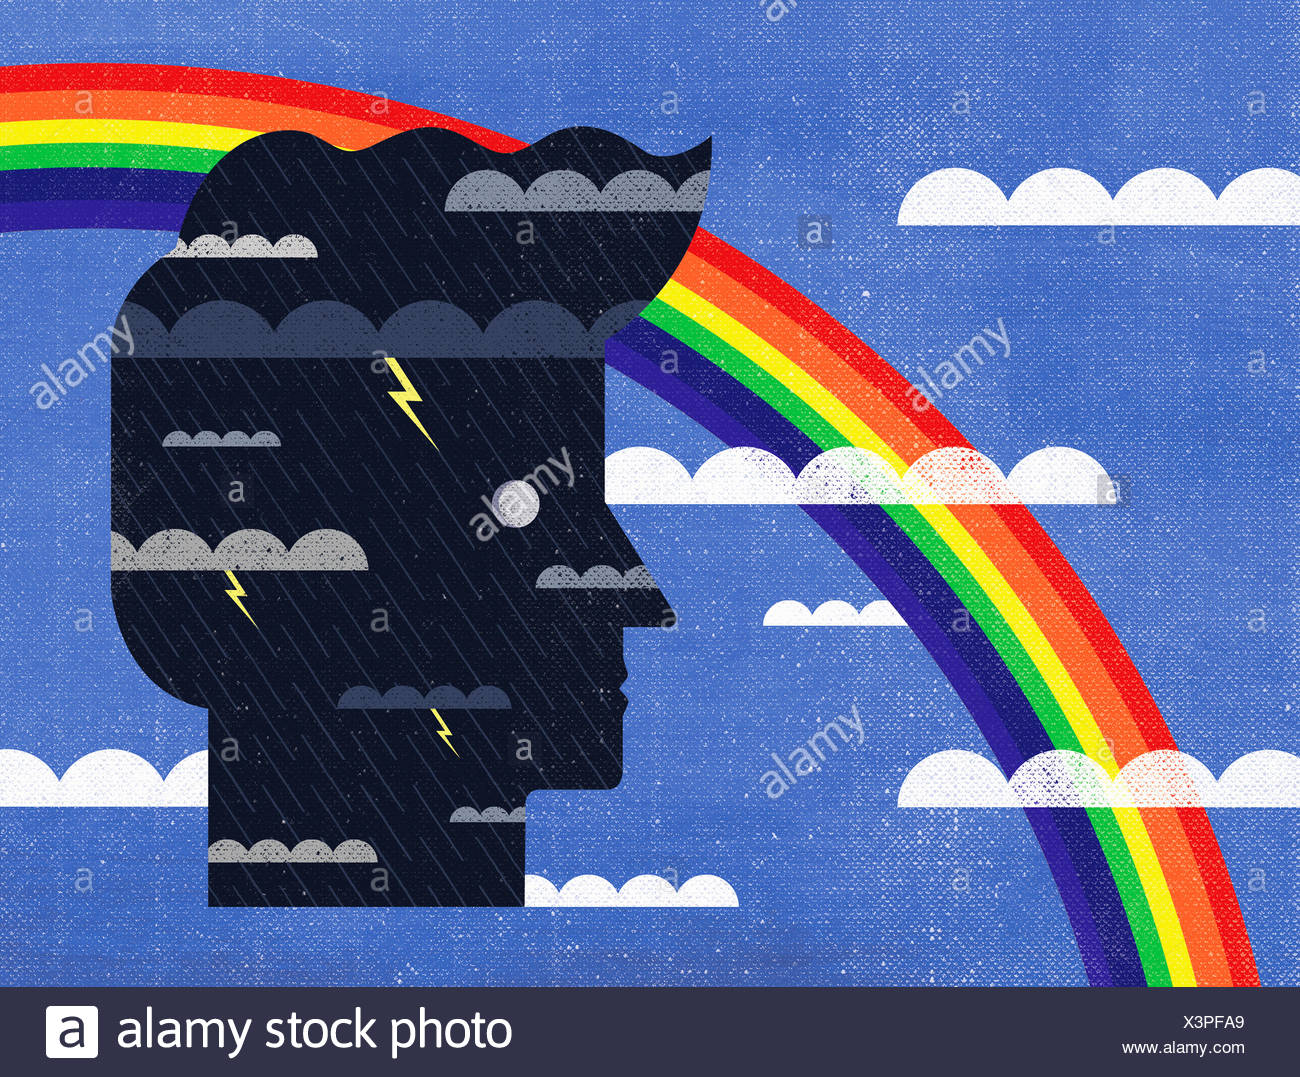 Contrast between sunny blue sky and storm inside of man's head - Stock Image